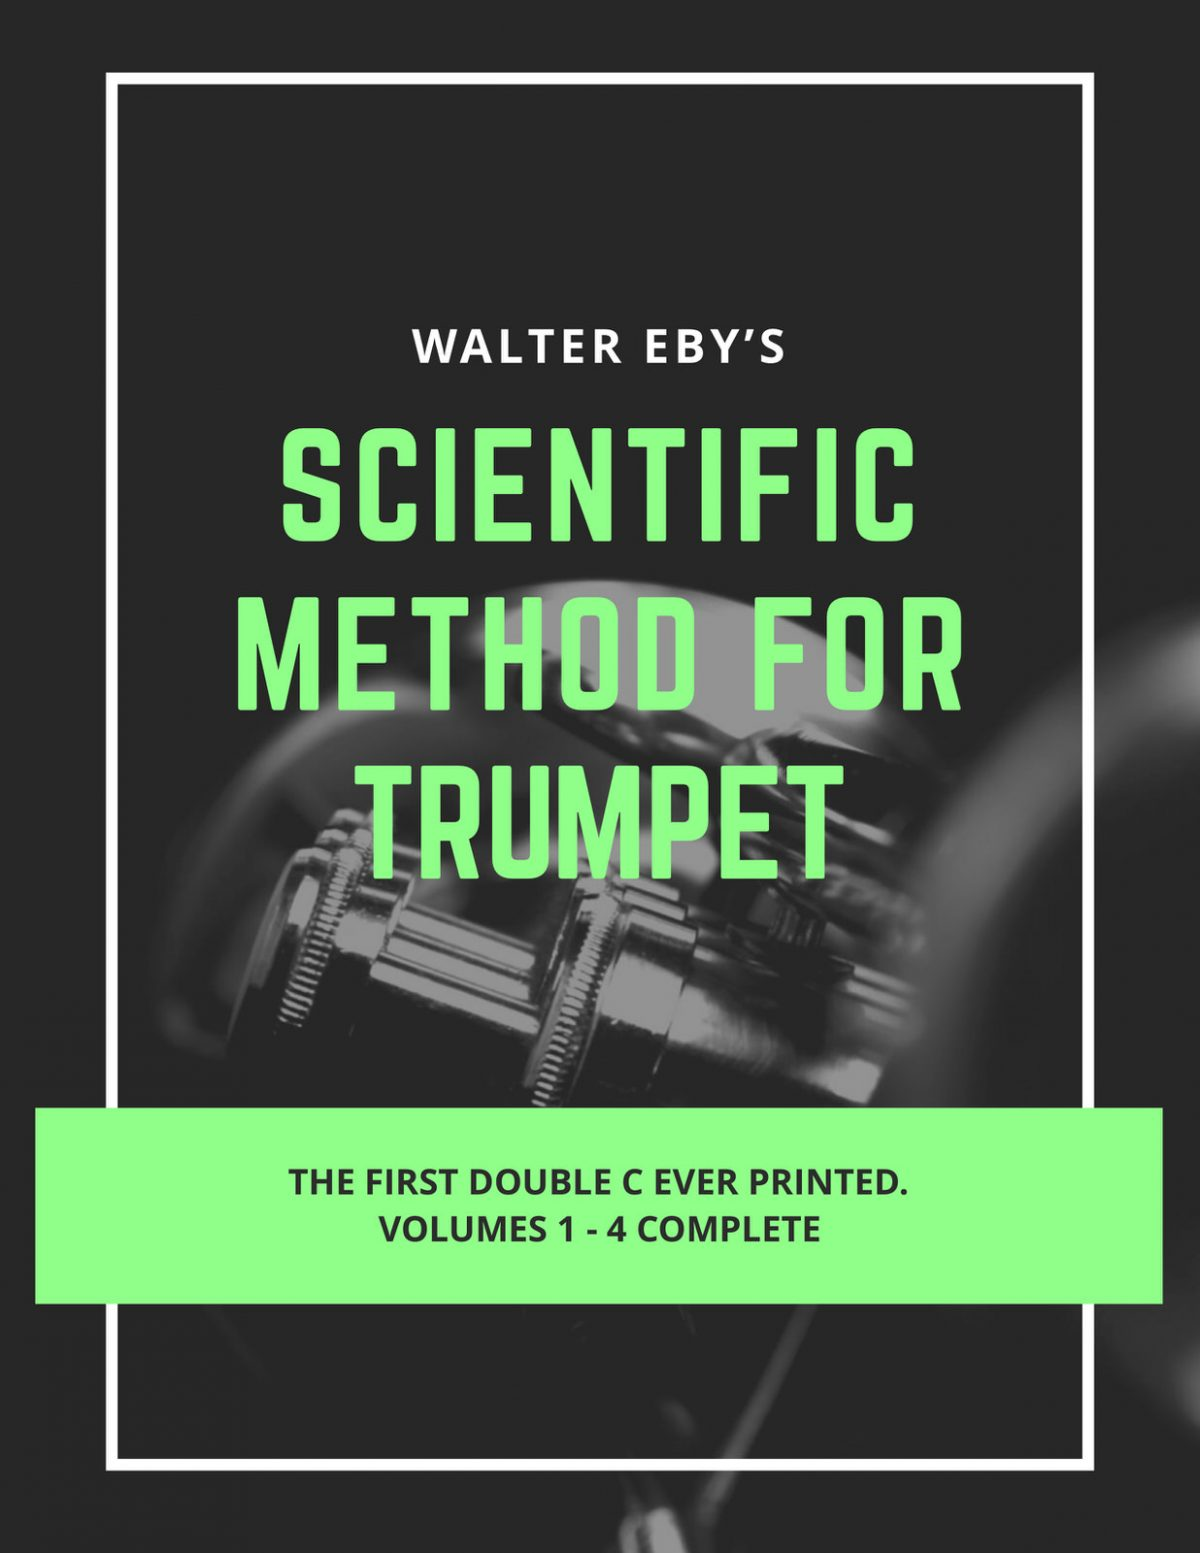 Eby, Walter Scientific Method for Trumpet